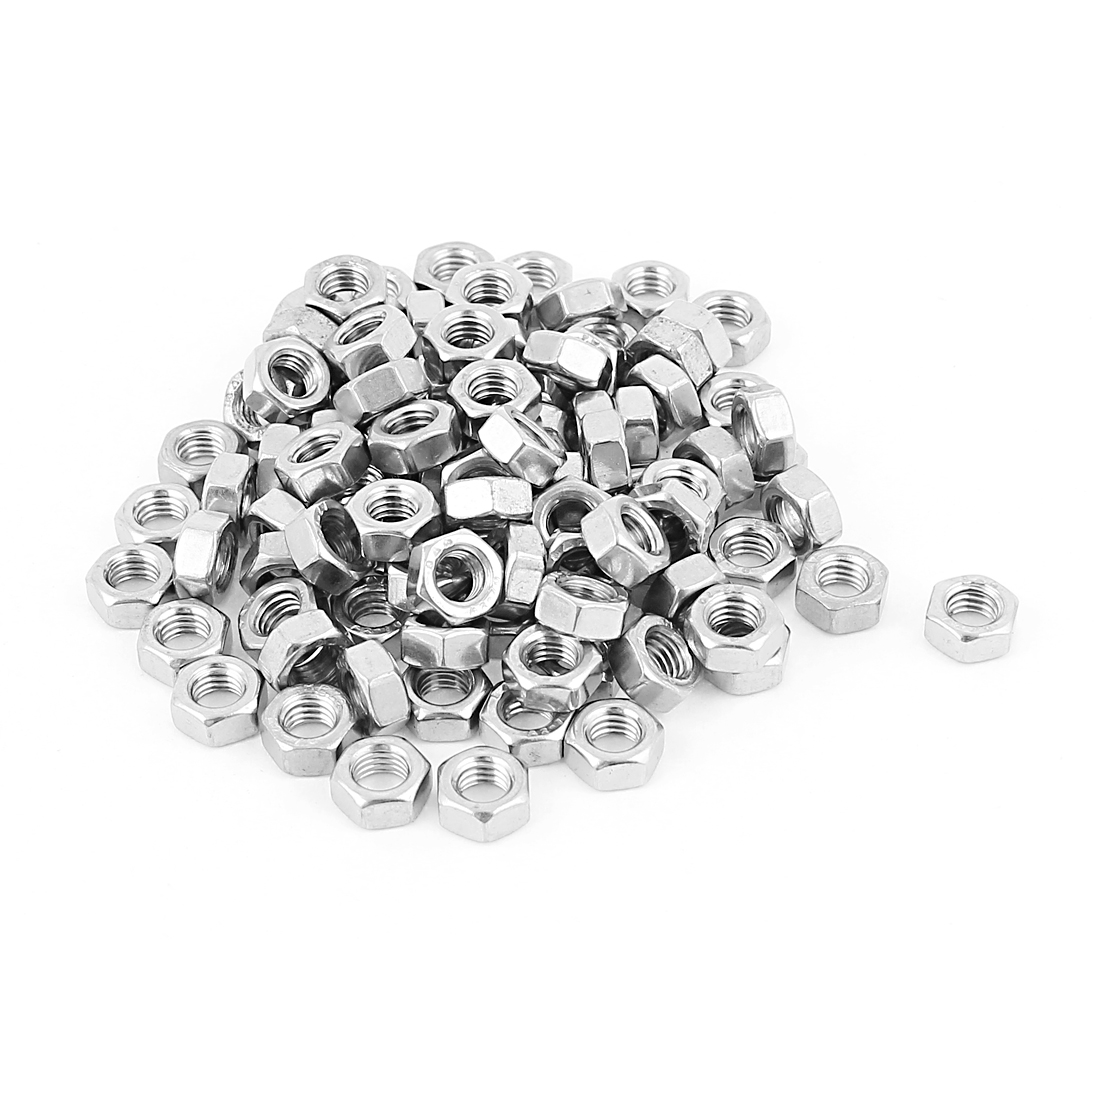 5mm Thread Dia Electric Machine Fastener Metal Screws Hex Nut Silver Tone 100Pcs